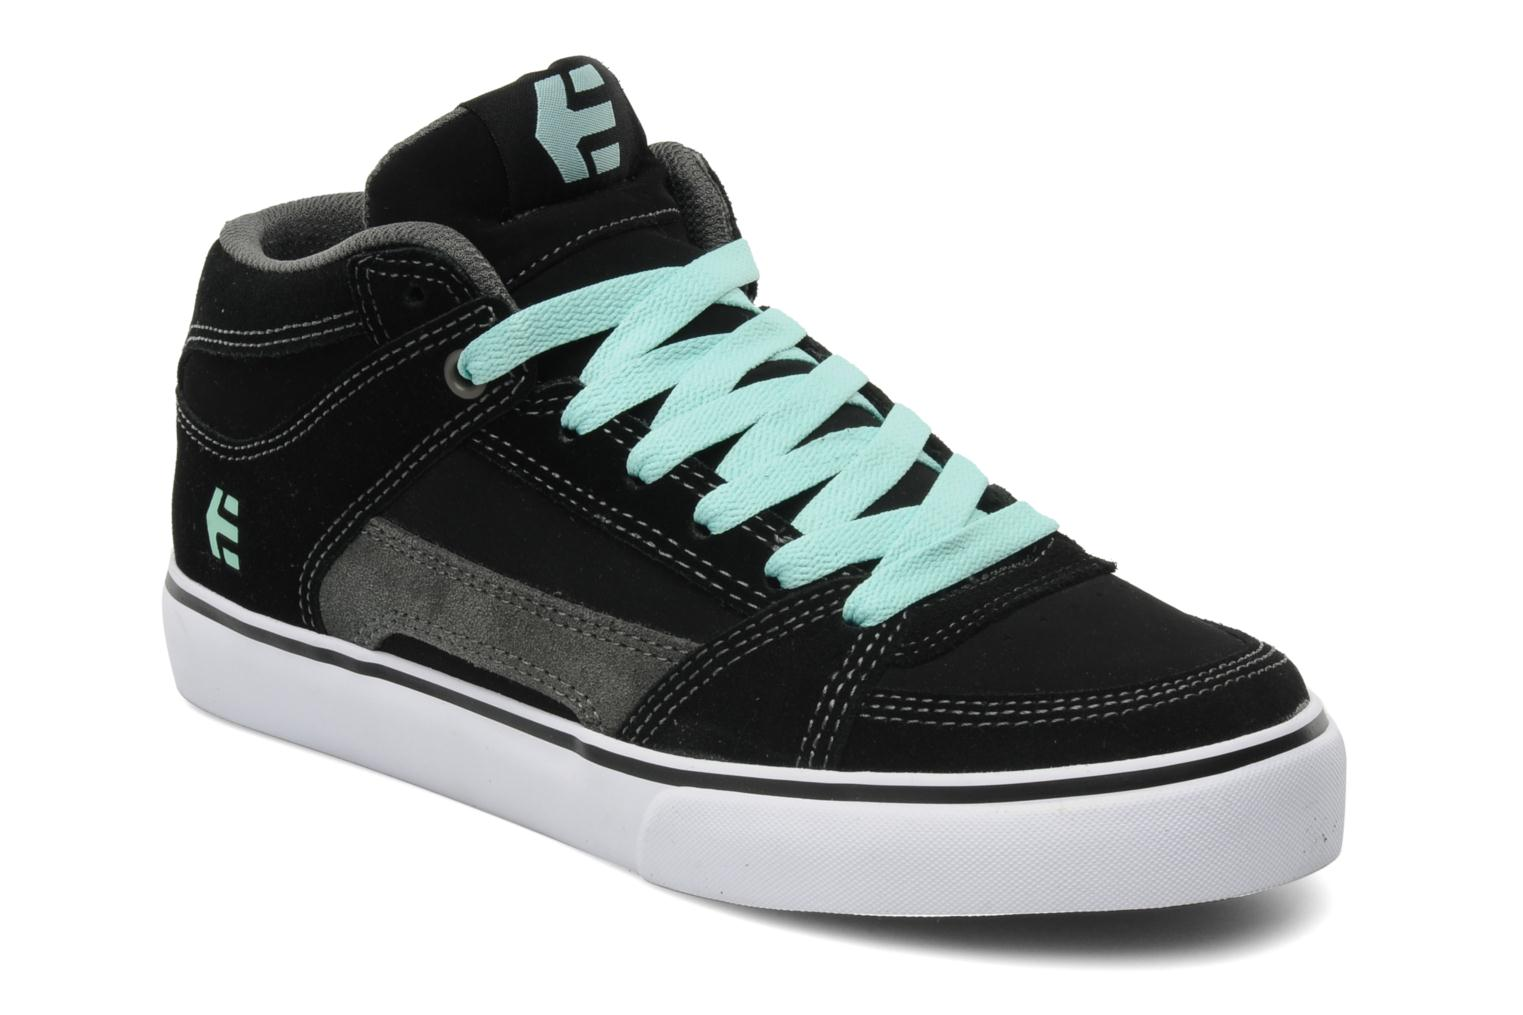 Etnies Rvm Shoes Sale Etnies Rvm m Sport Shoes in